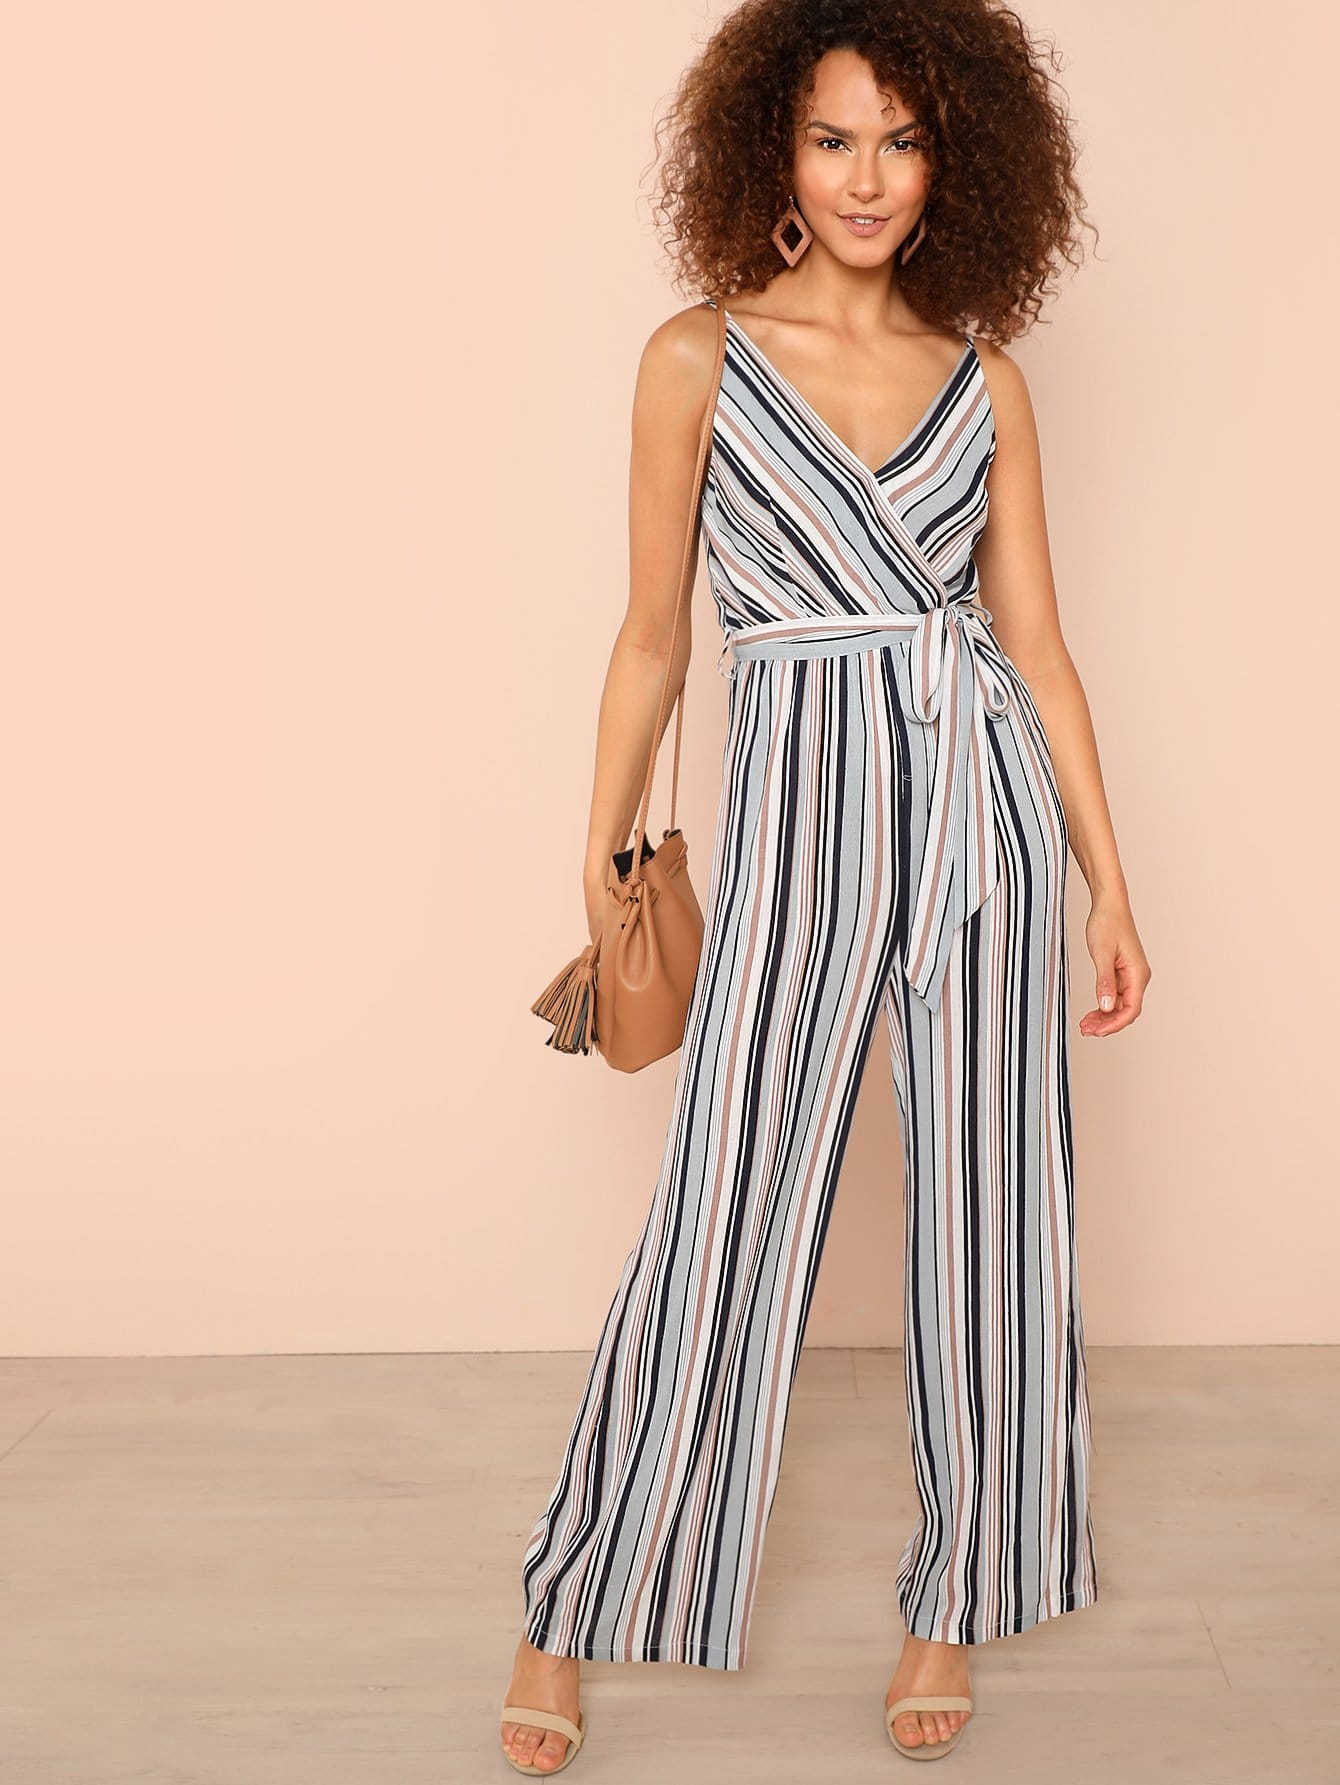 Self Belted Surplice Neck Wide Leg Cami Jumpsuit wide leg scoop neck cami jumpsuit